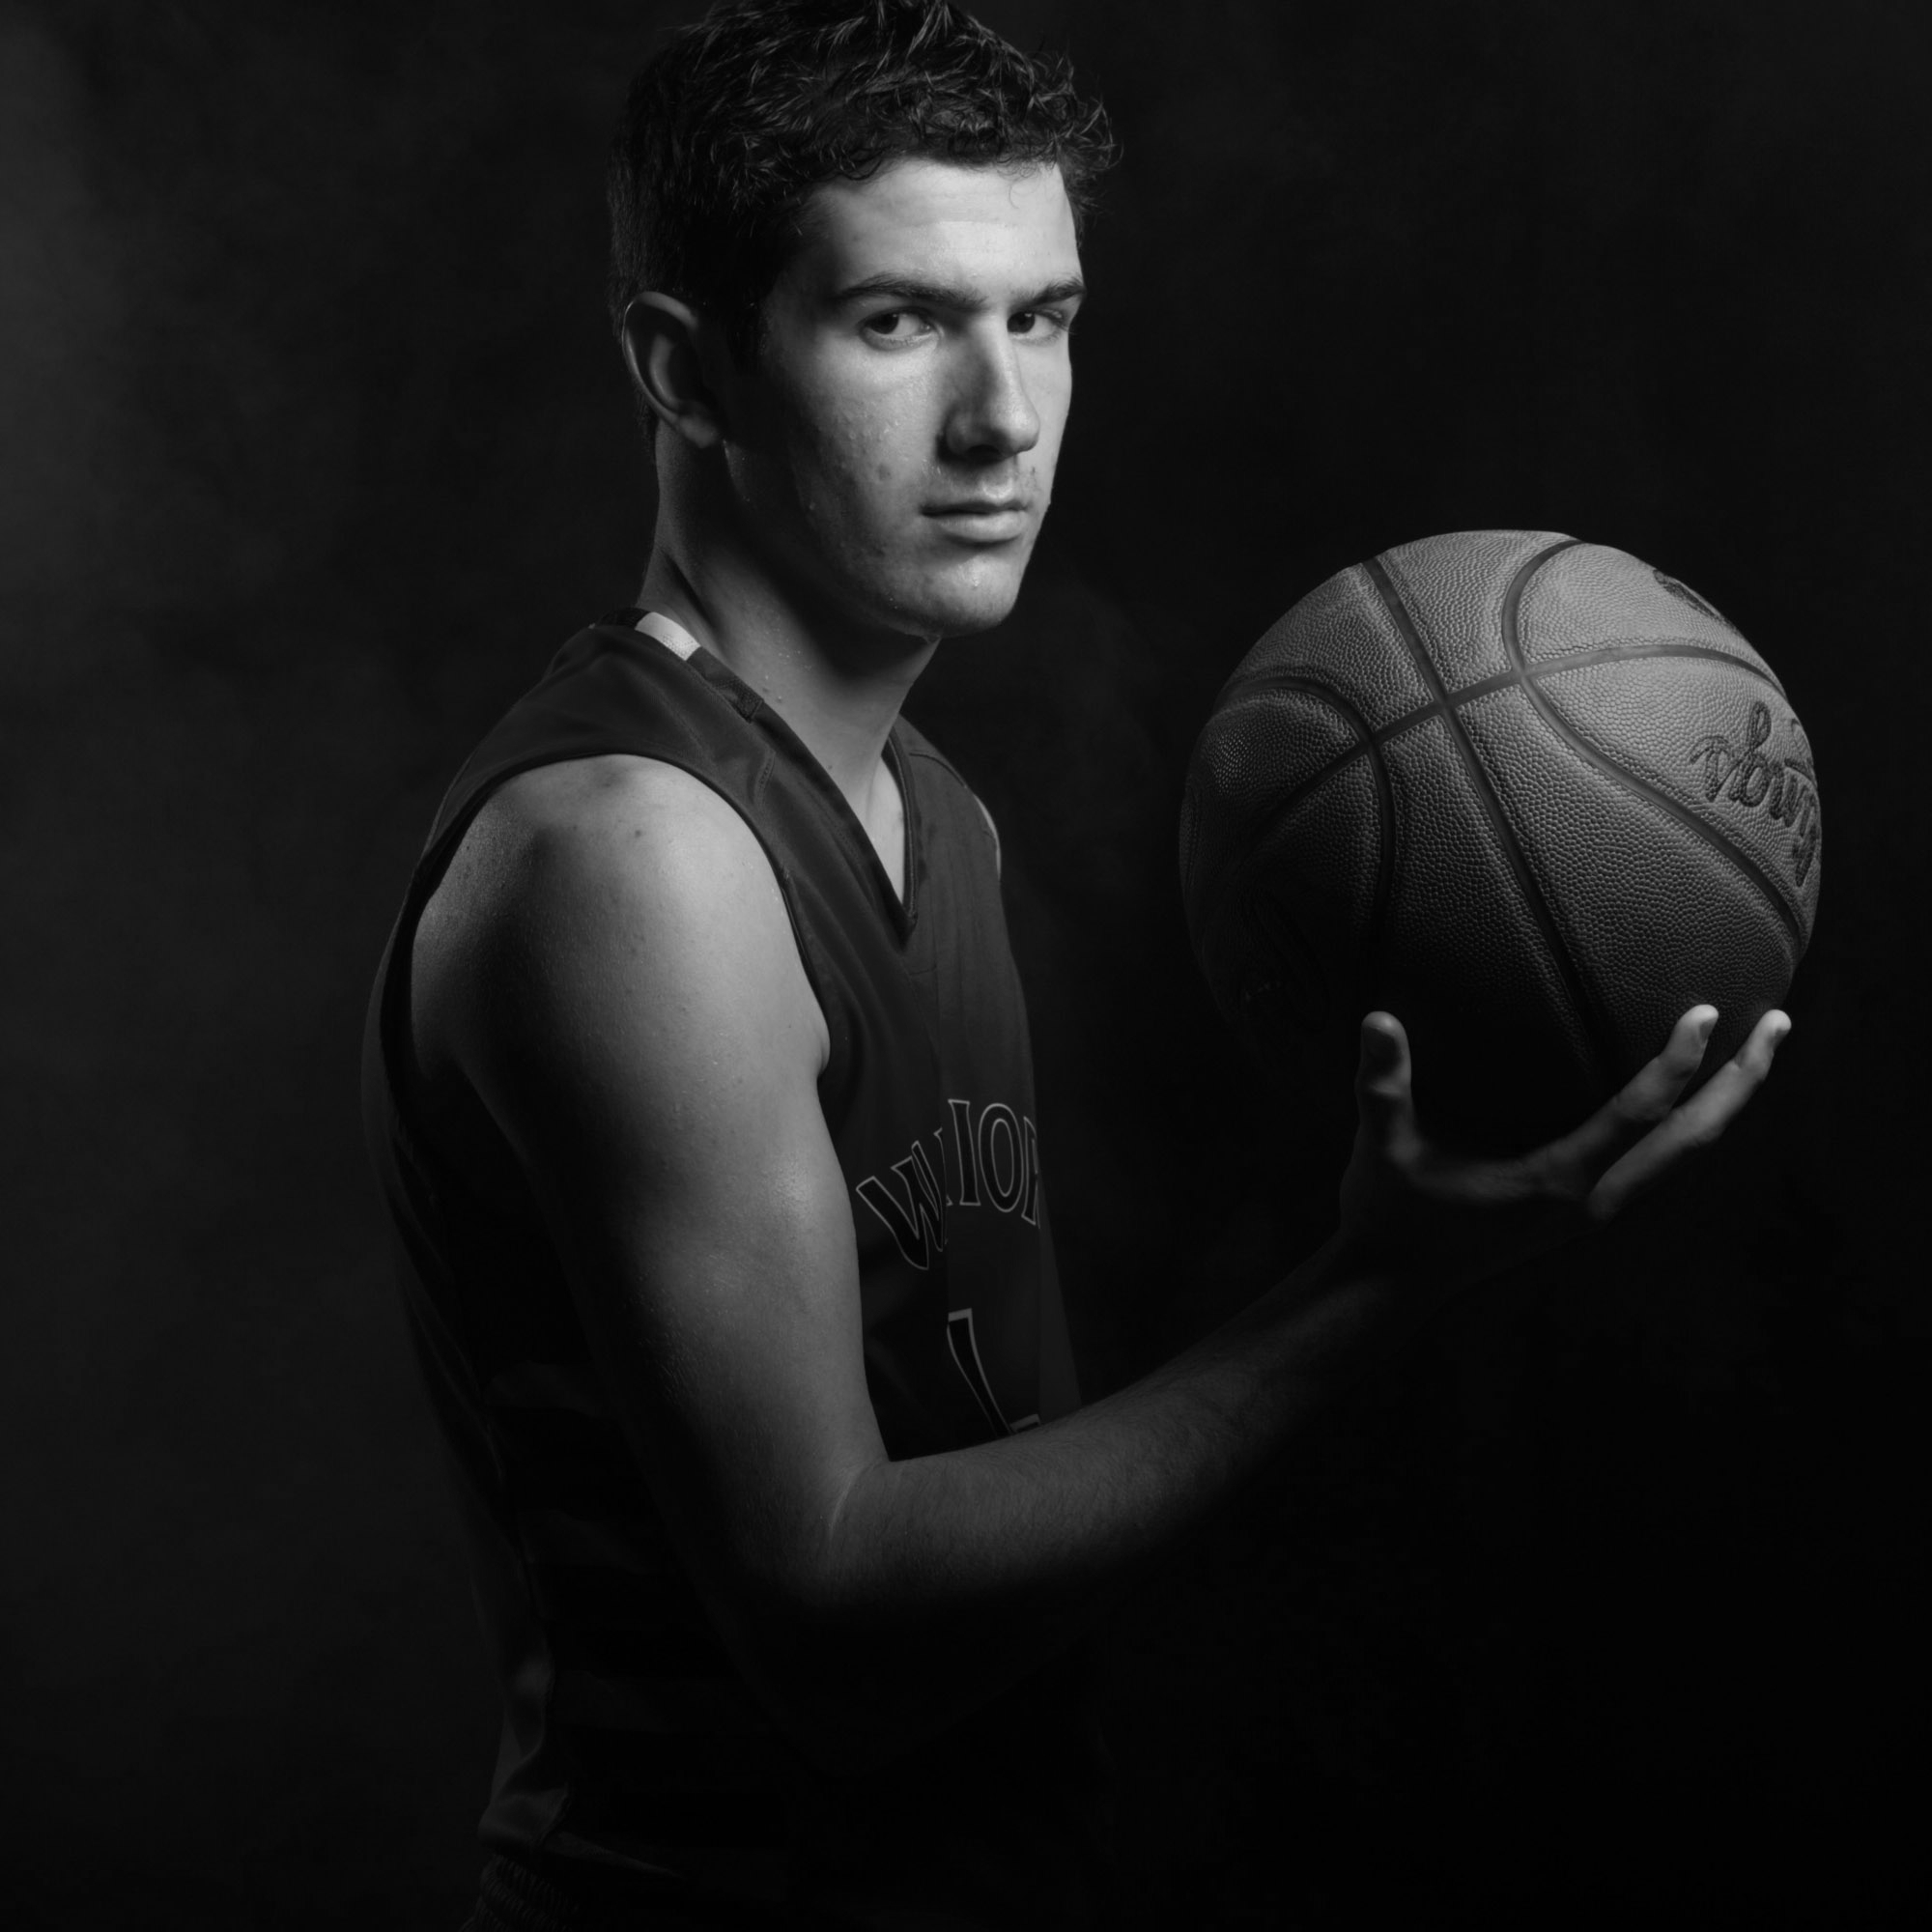 Photo 1  / Portrait photograph of Hunter holding a basketball.